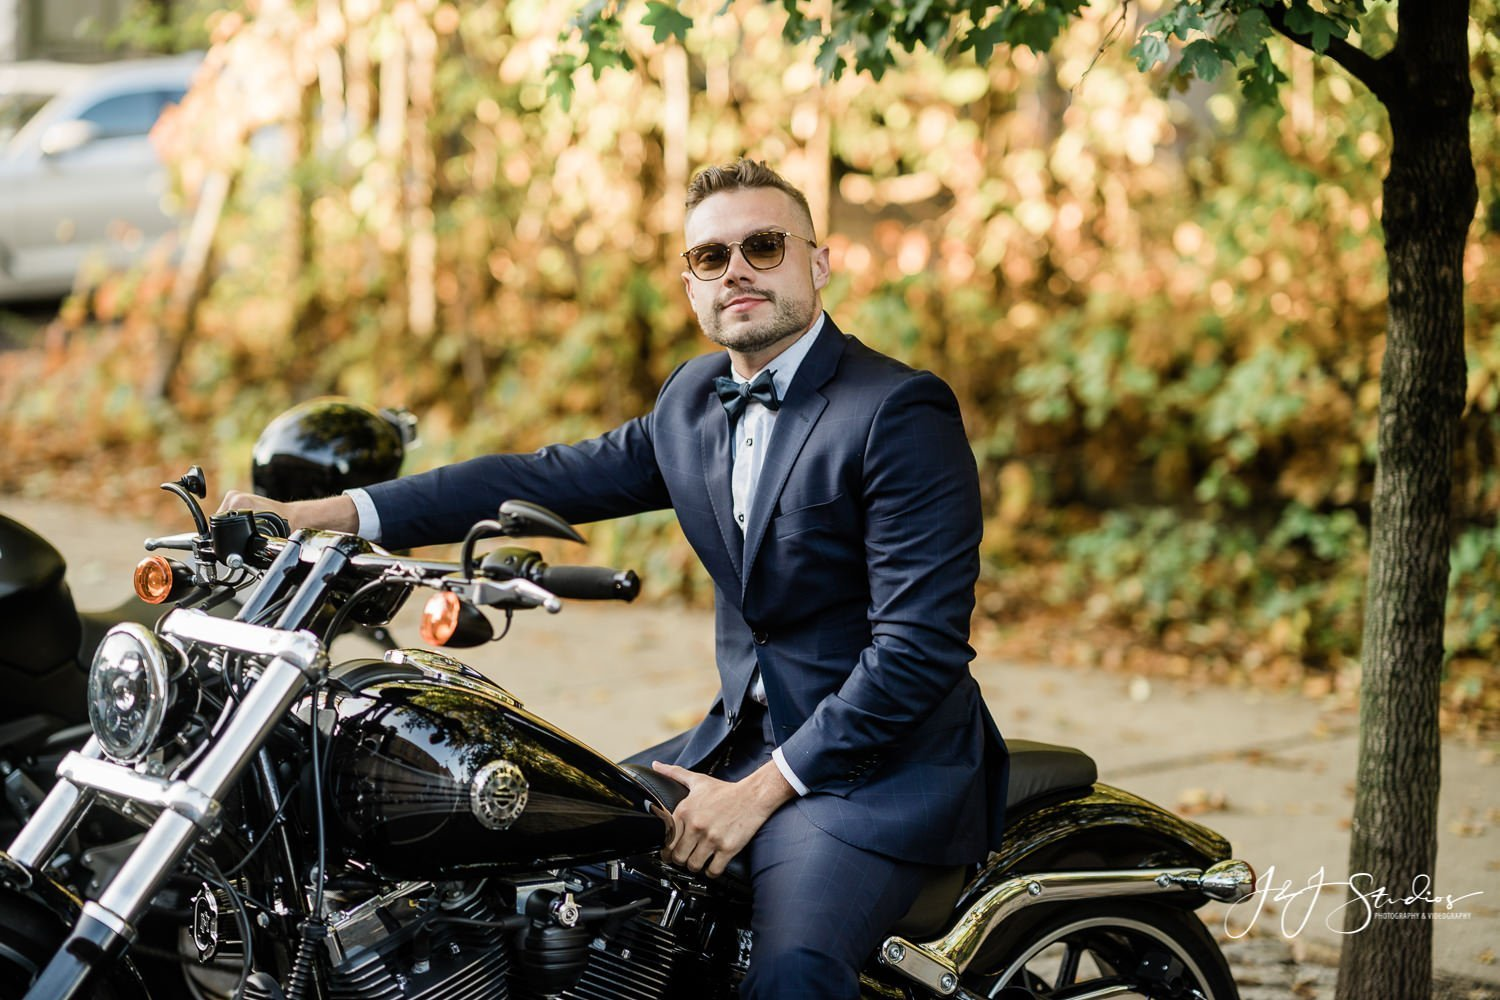 man in suit on motorcycle Distinguished Gentleman's Ride Philadelphia